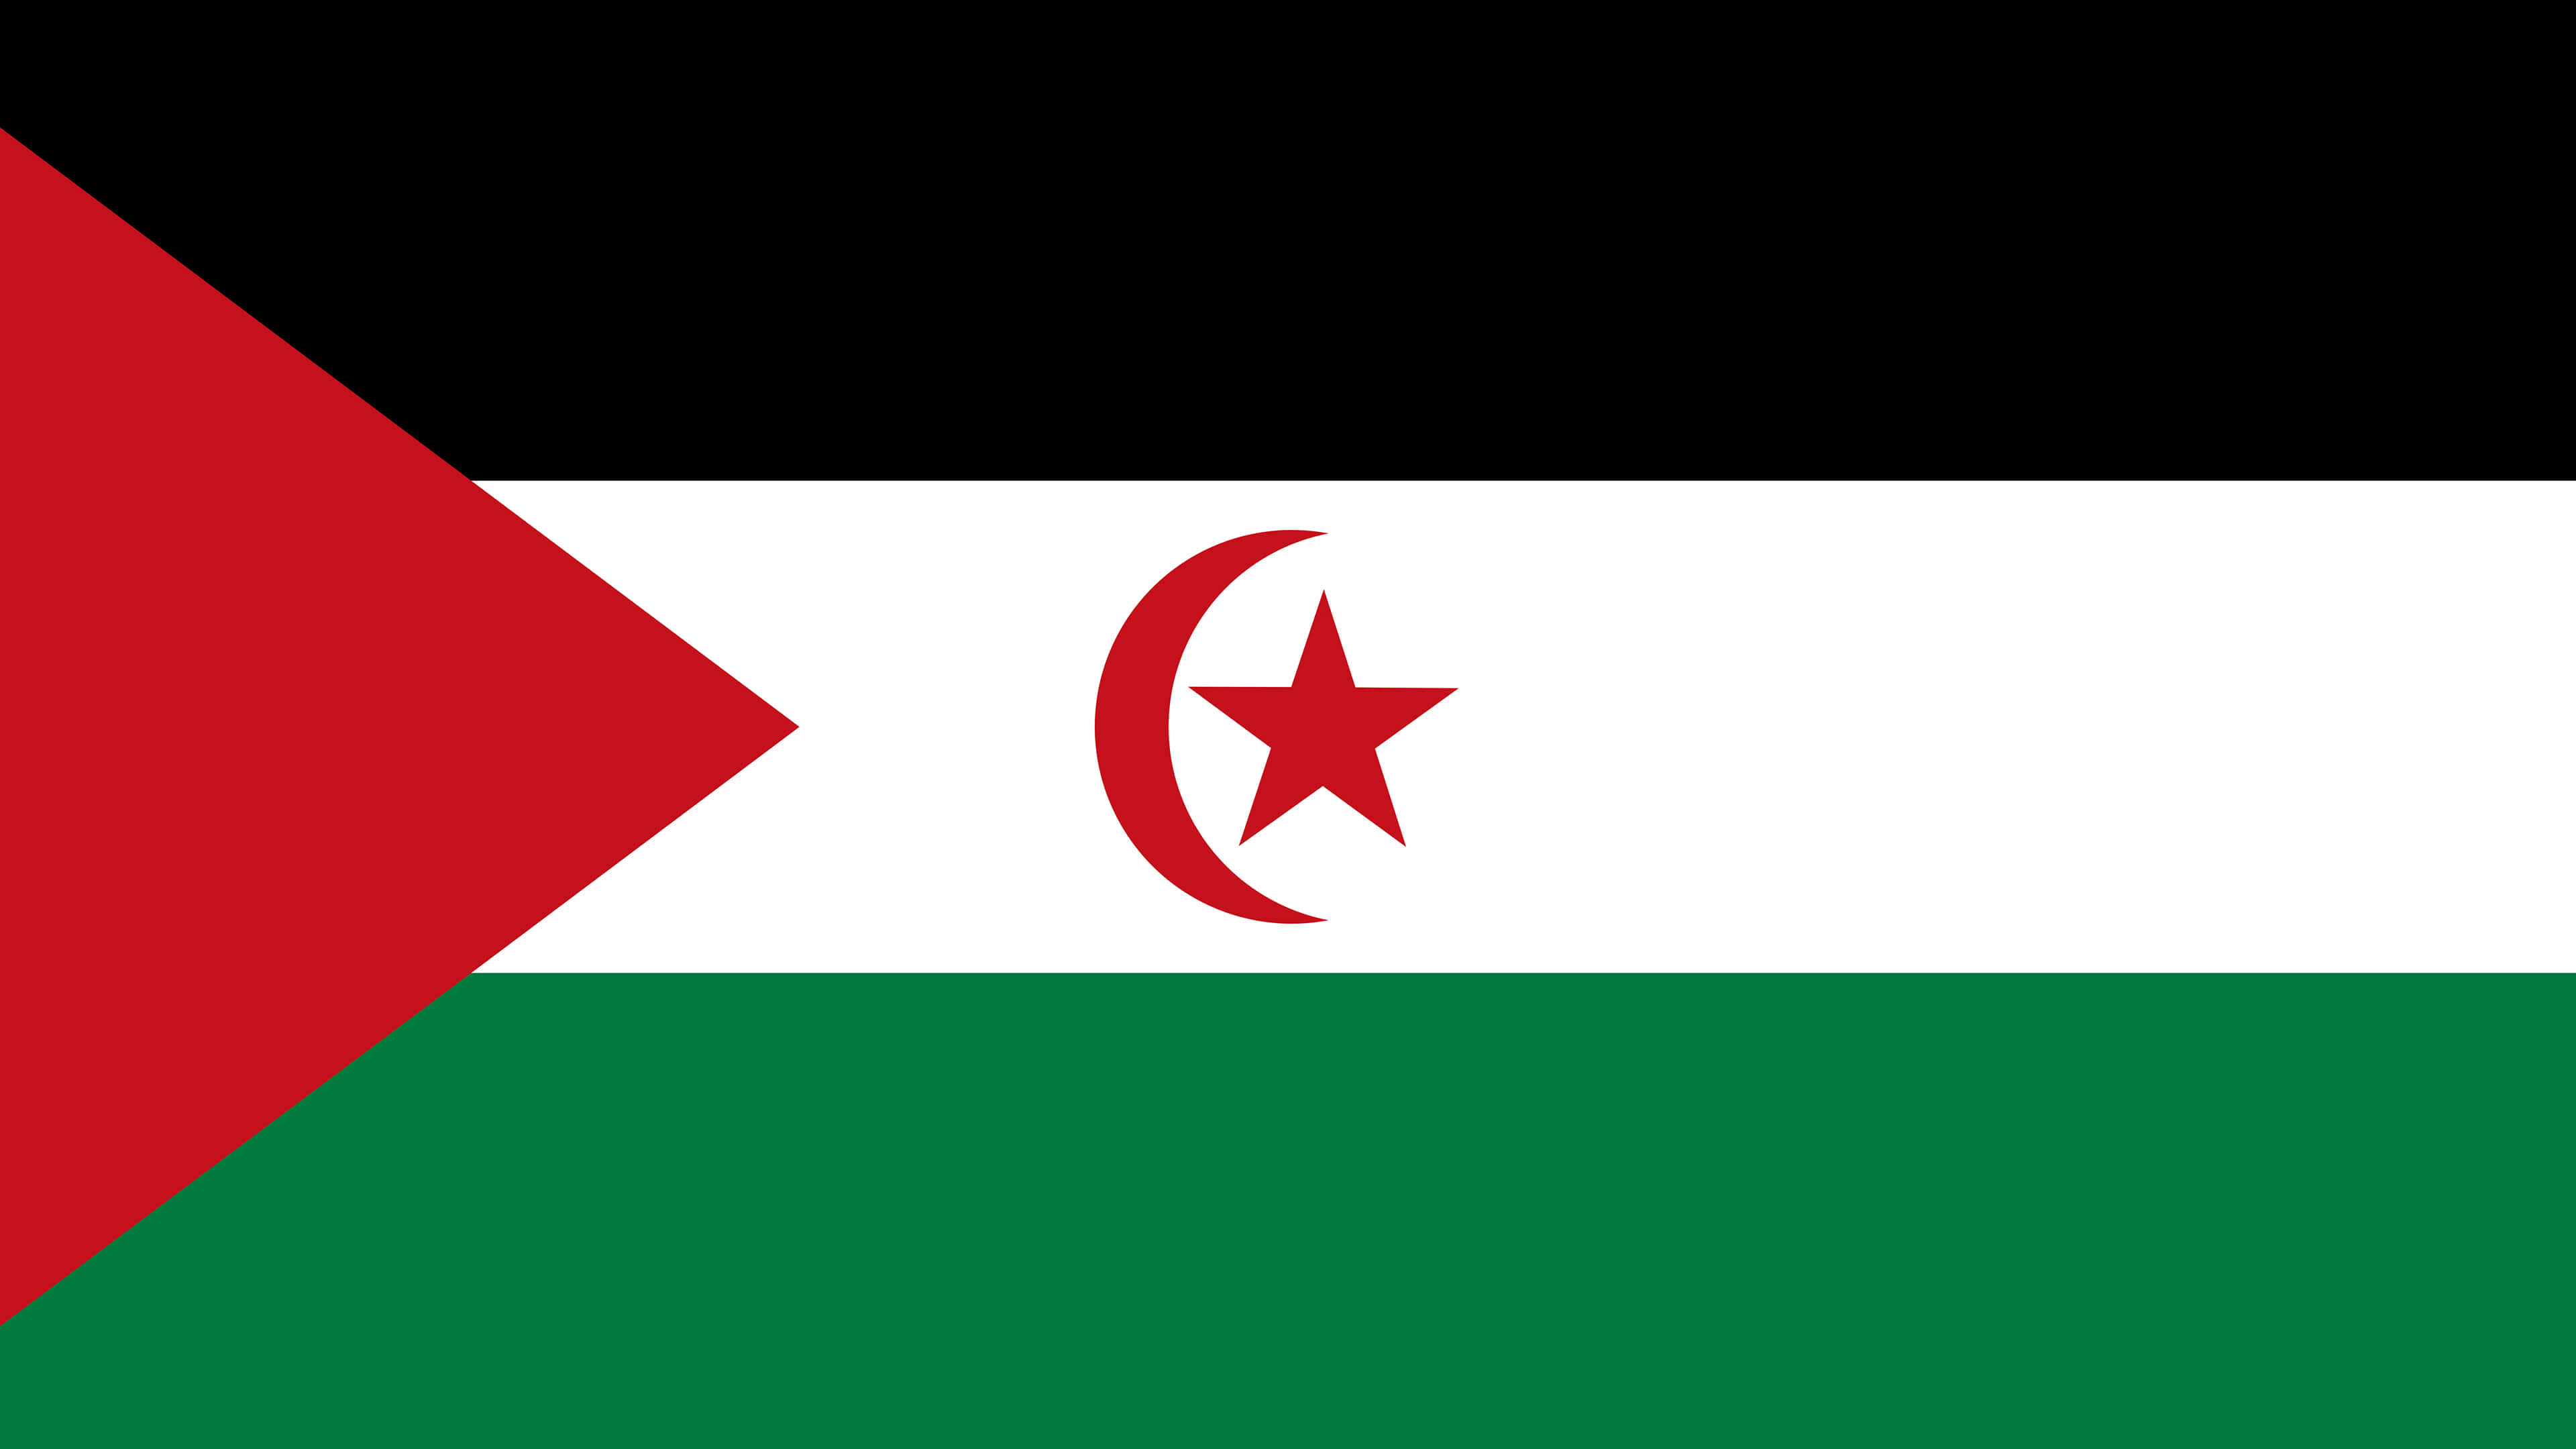 sahrawi arab democratic republic flag uhd 4k wallpaper